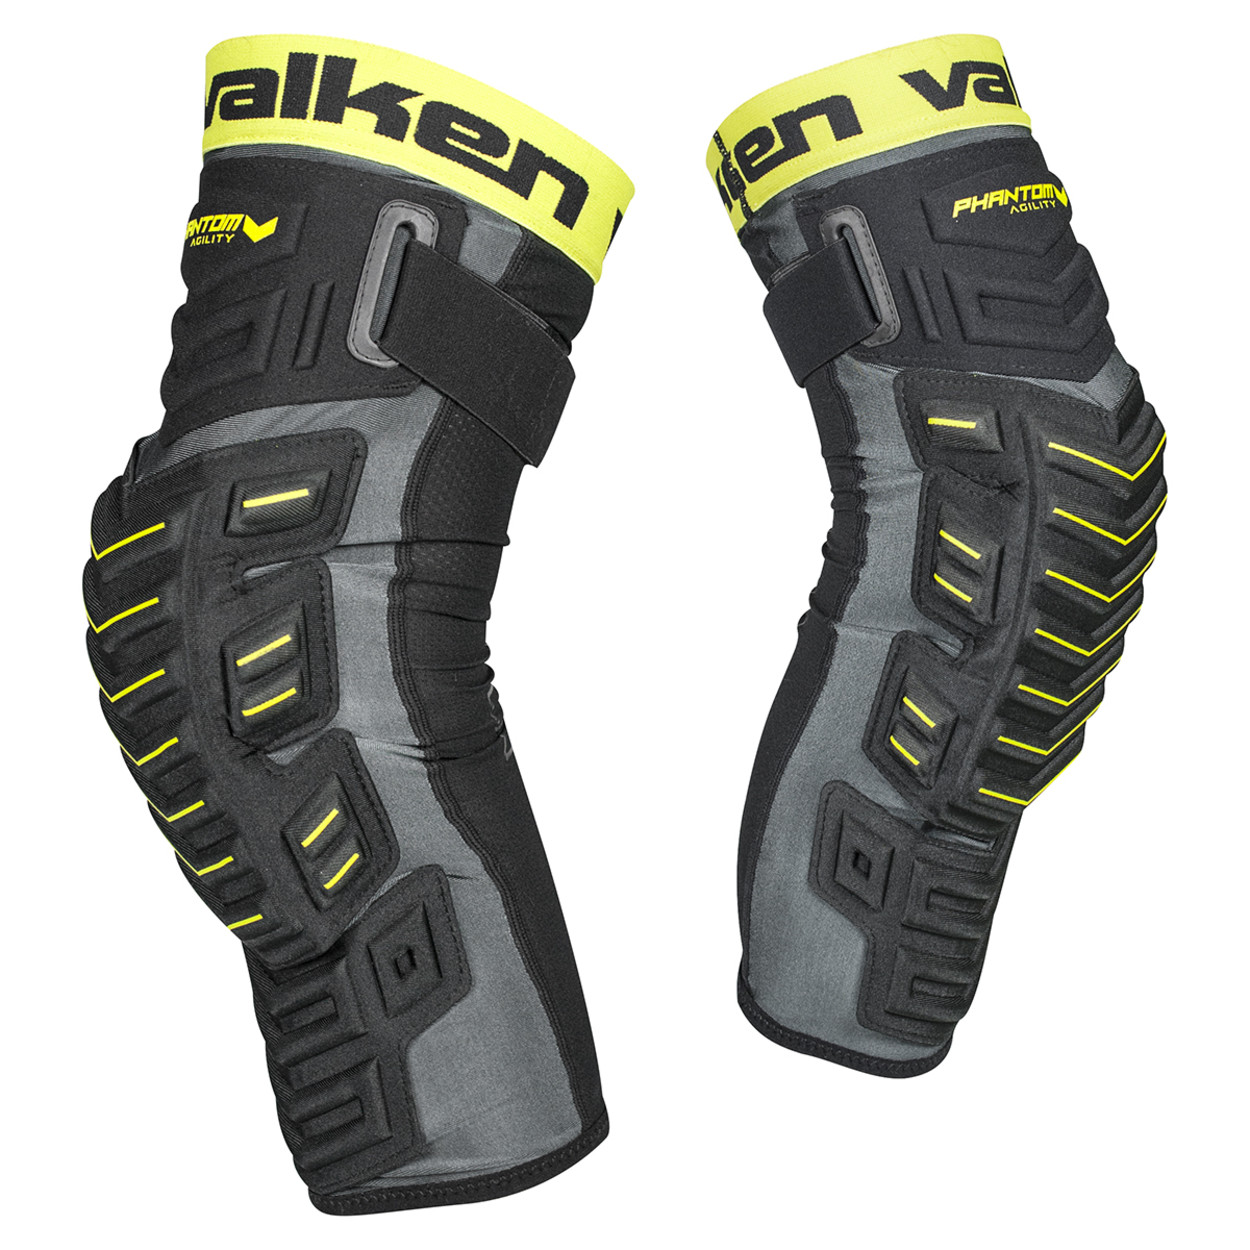 Valken Paintball Phantom Agility Knee Pads